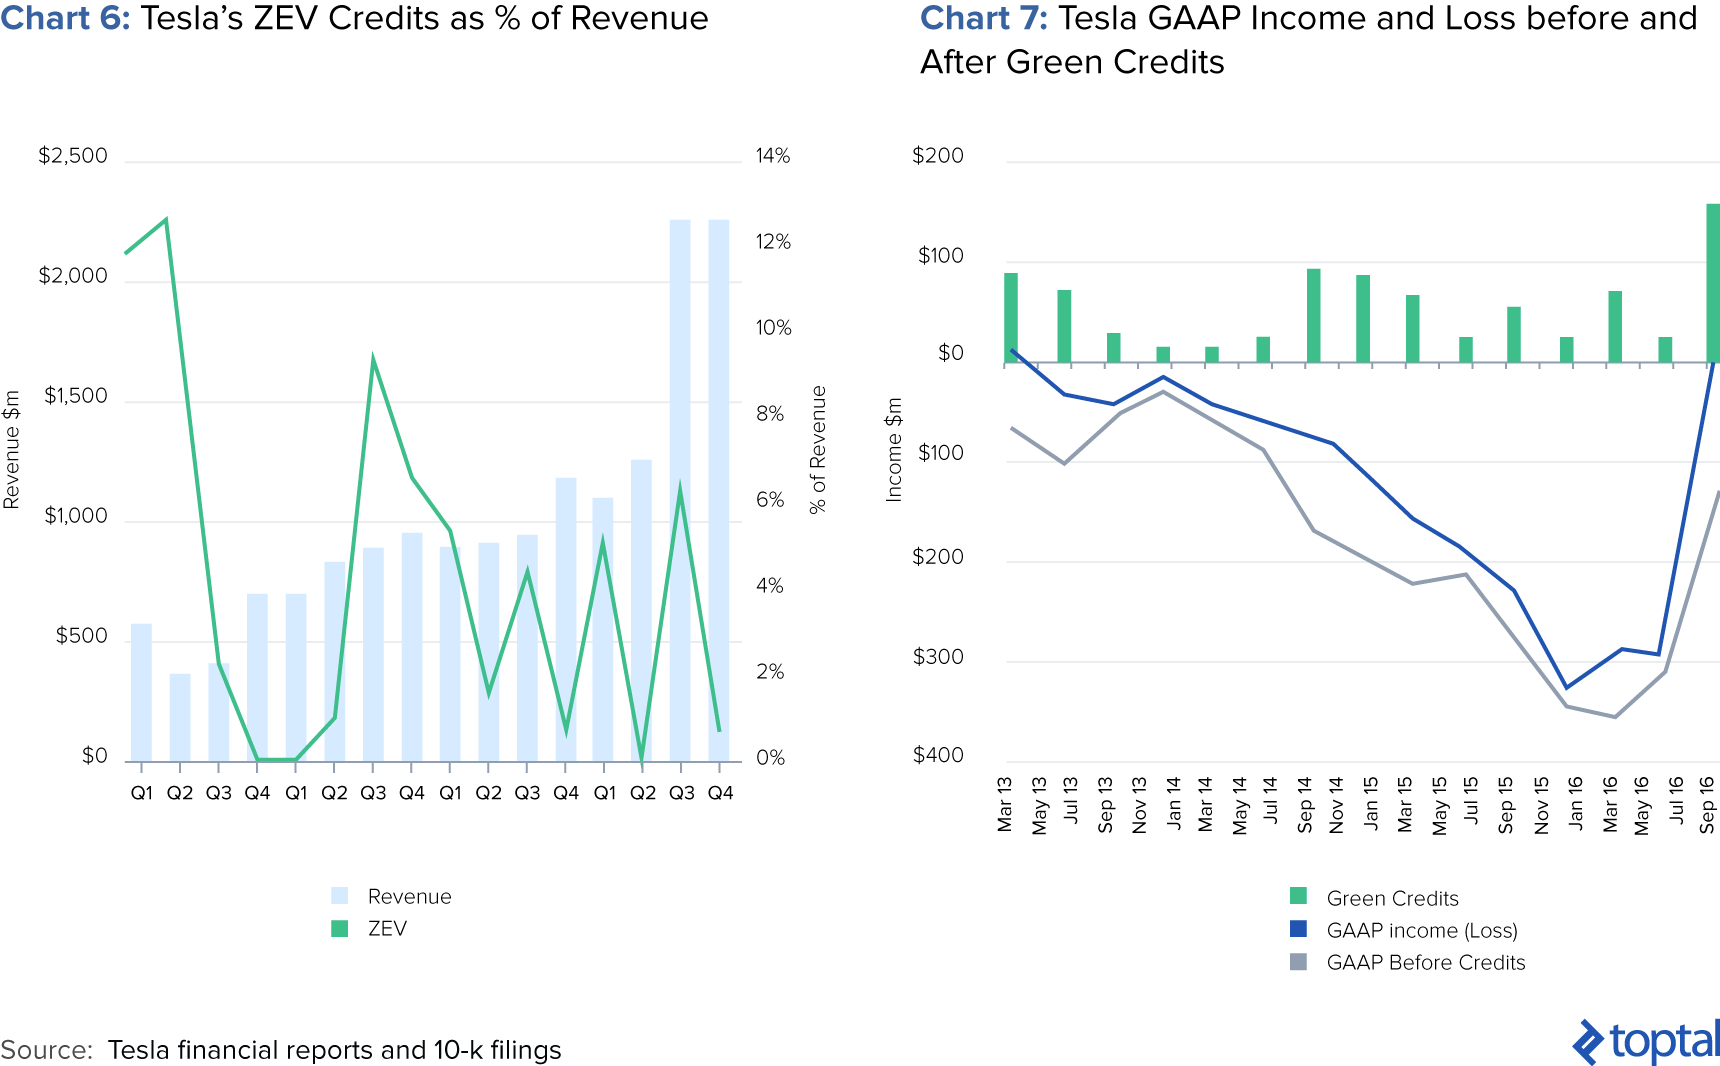 Chart 6: Tesla's ZEV Credits as % of Revenue; and Chart 7: Tesla GAAP Income and Loss before and after Green Credits